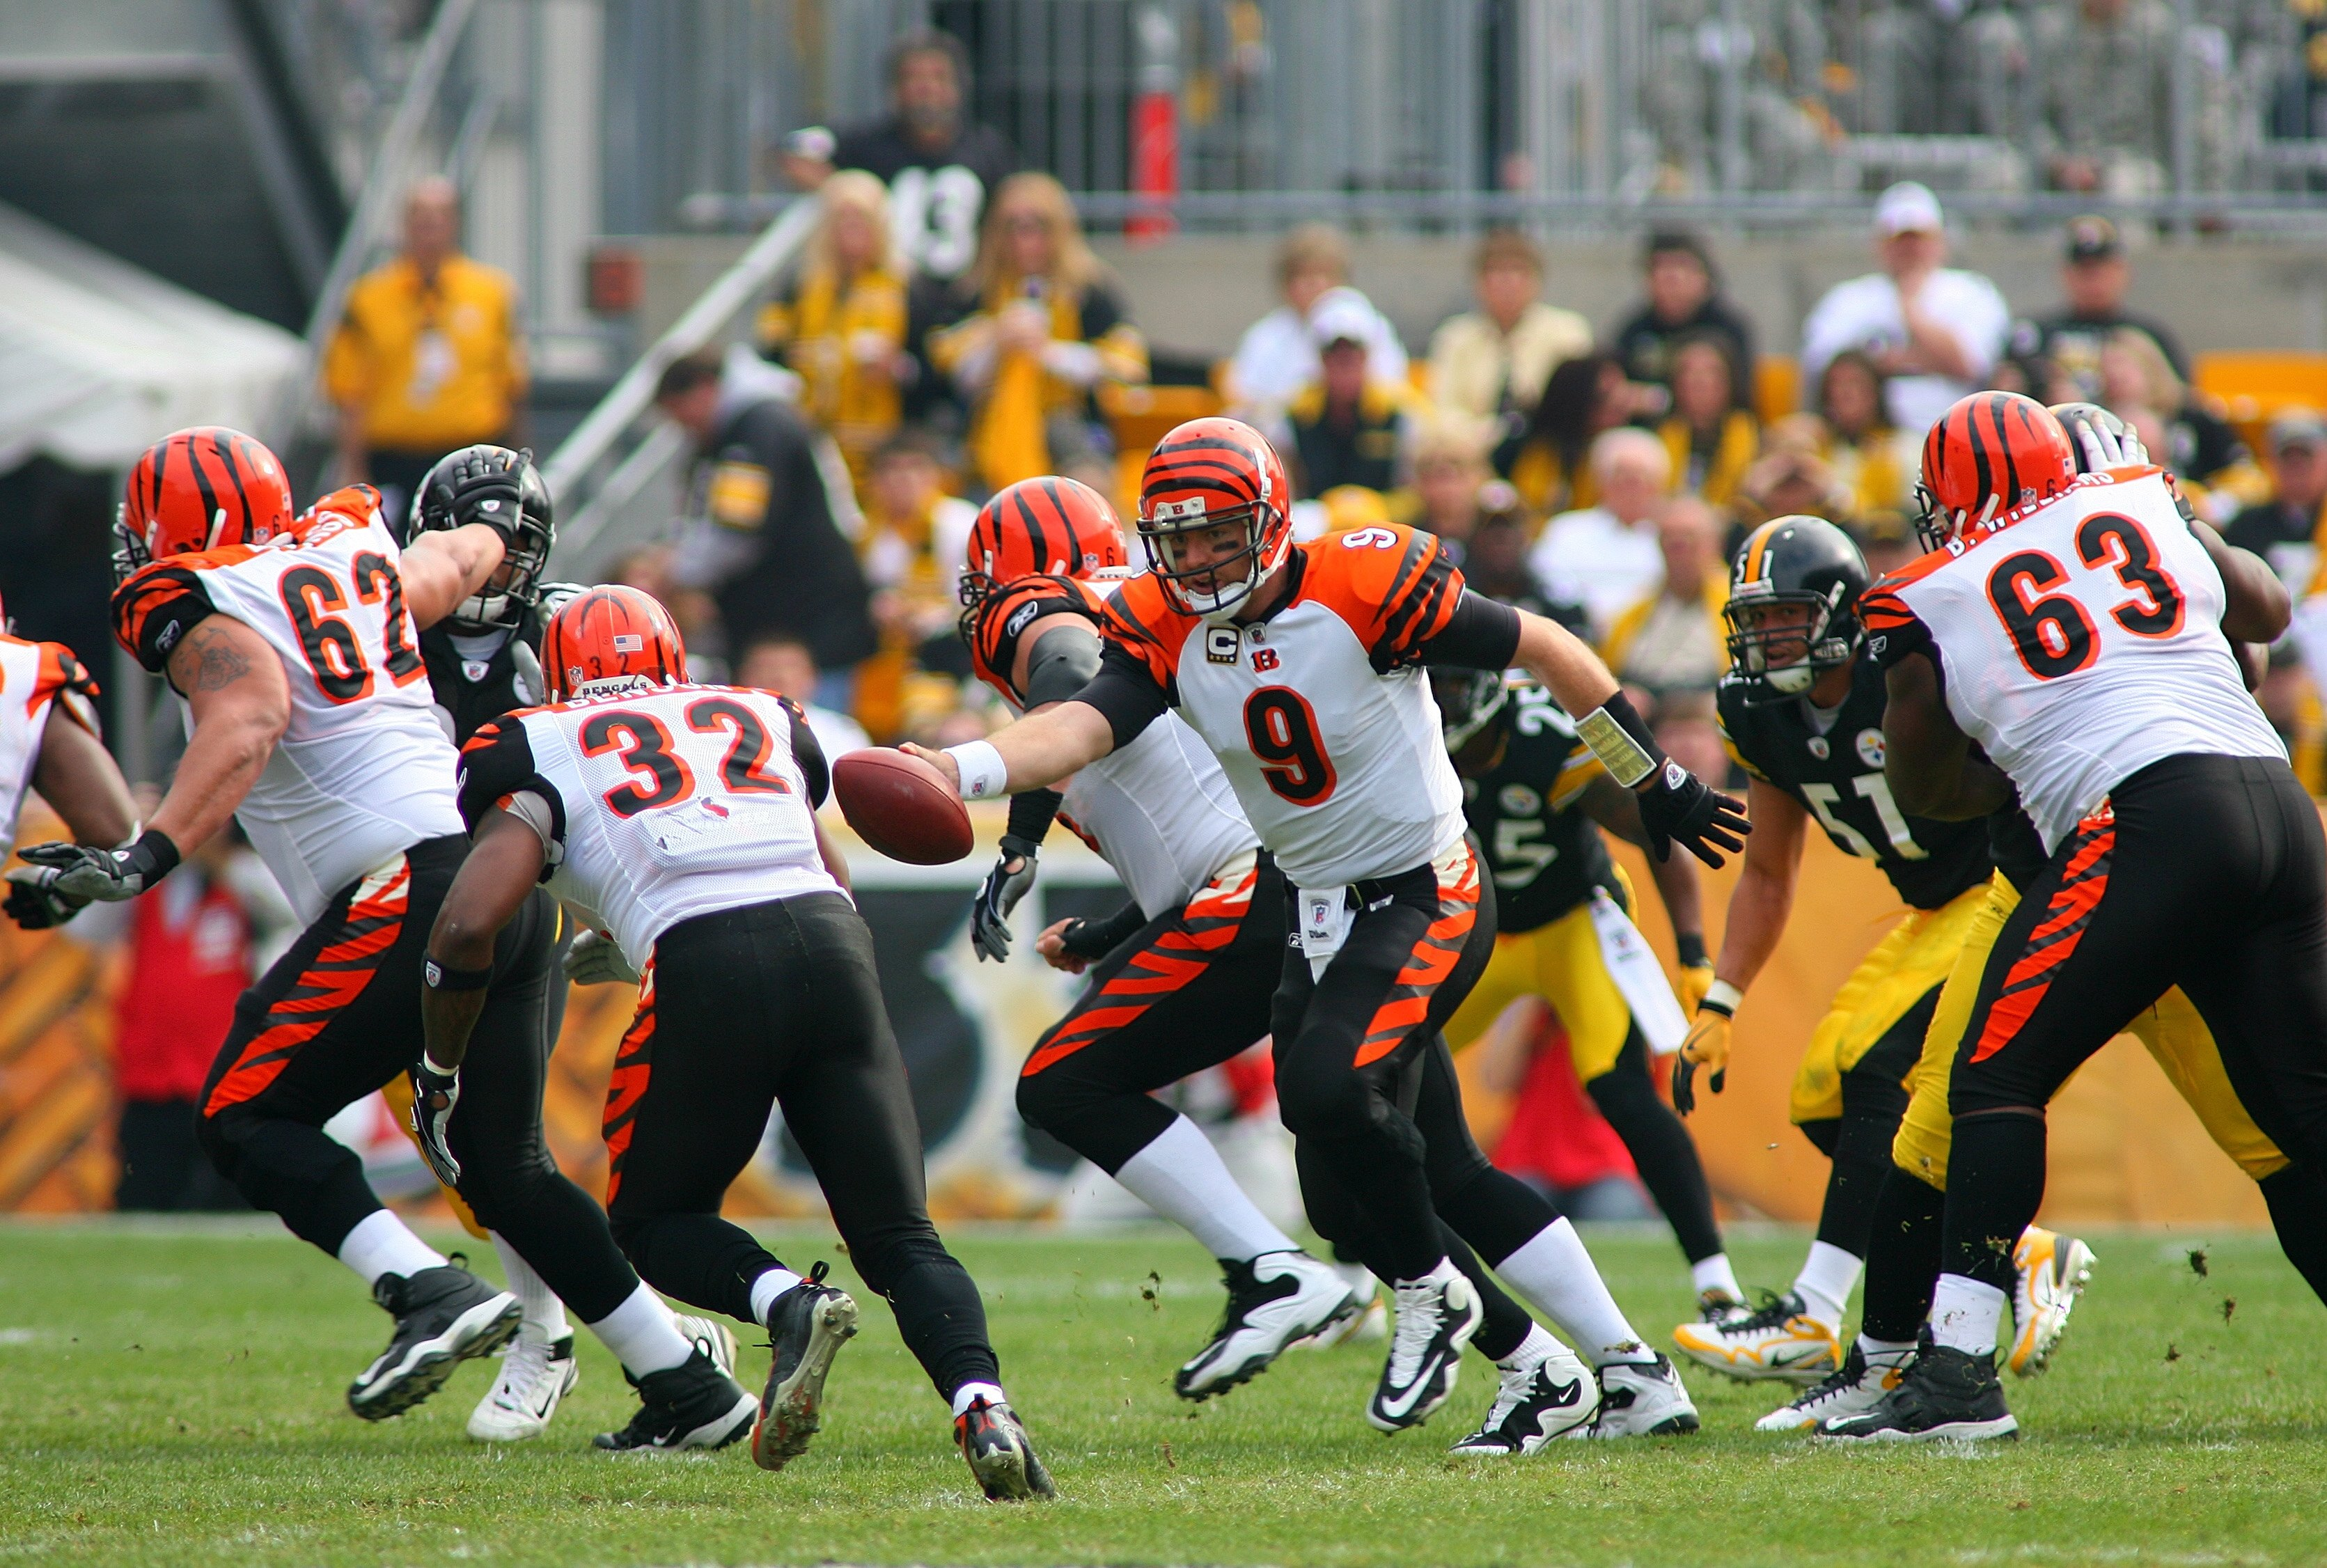 PITTSBURGH - NOVEMBER 15:  Quarterback Carson Palmer #9 of the Cincinnati Bengals looks to hand off the ball during their game against the Pittsburgh Steelers at Heinz Field on November 15, 2009 in Pittsburgh, Pennsylvania. The Bengals defeated the Steele